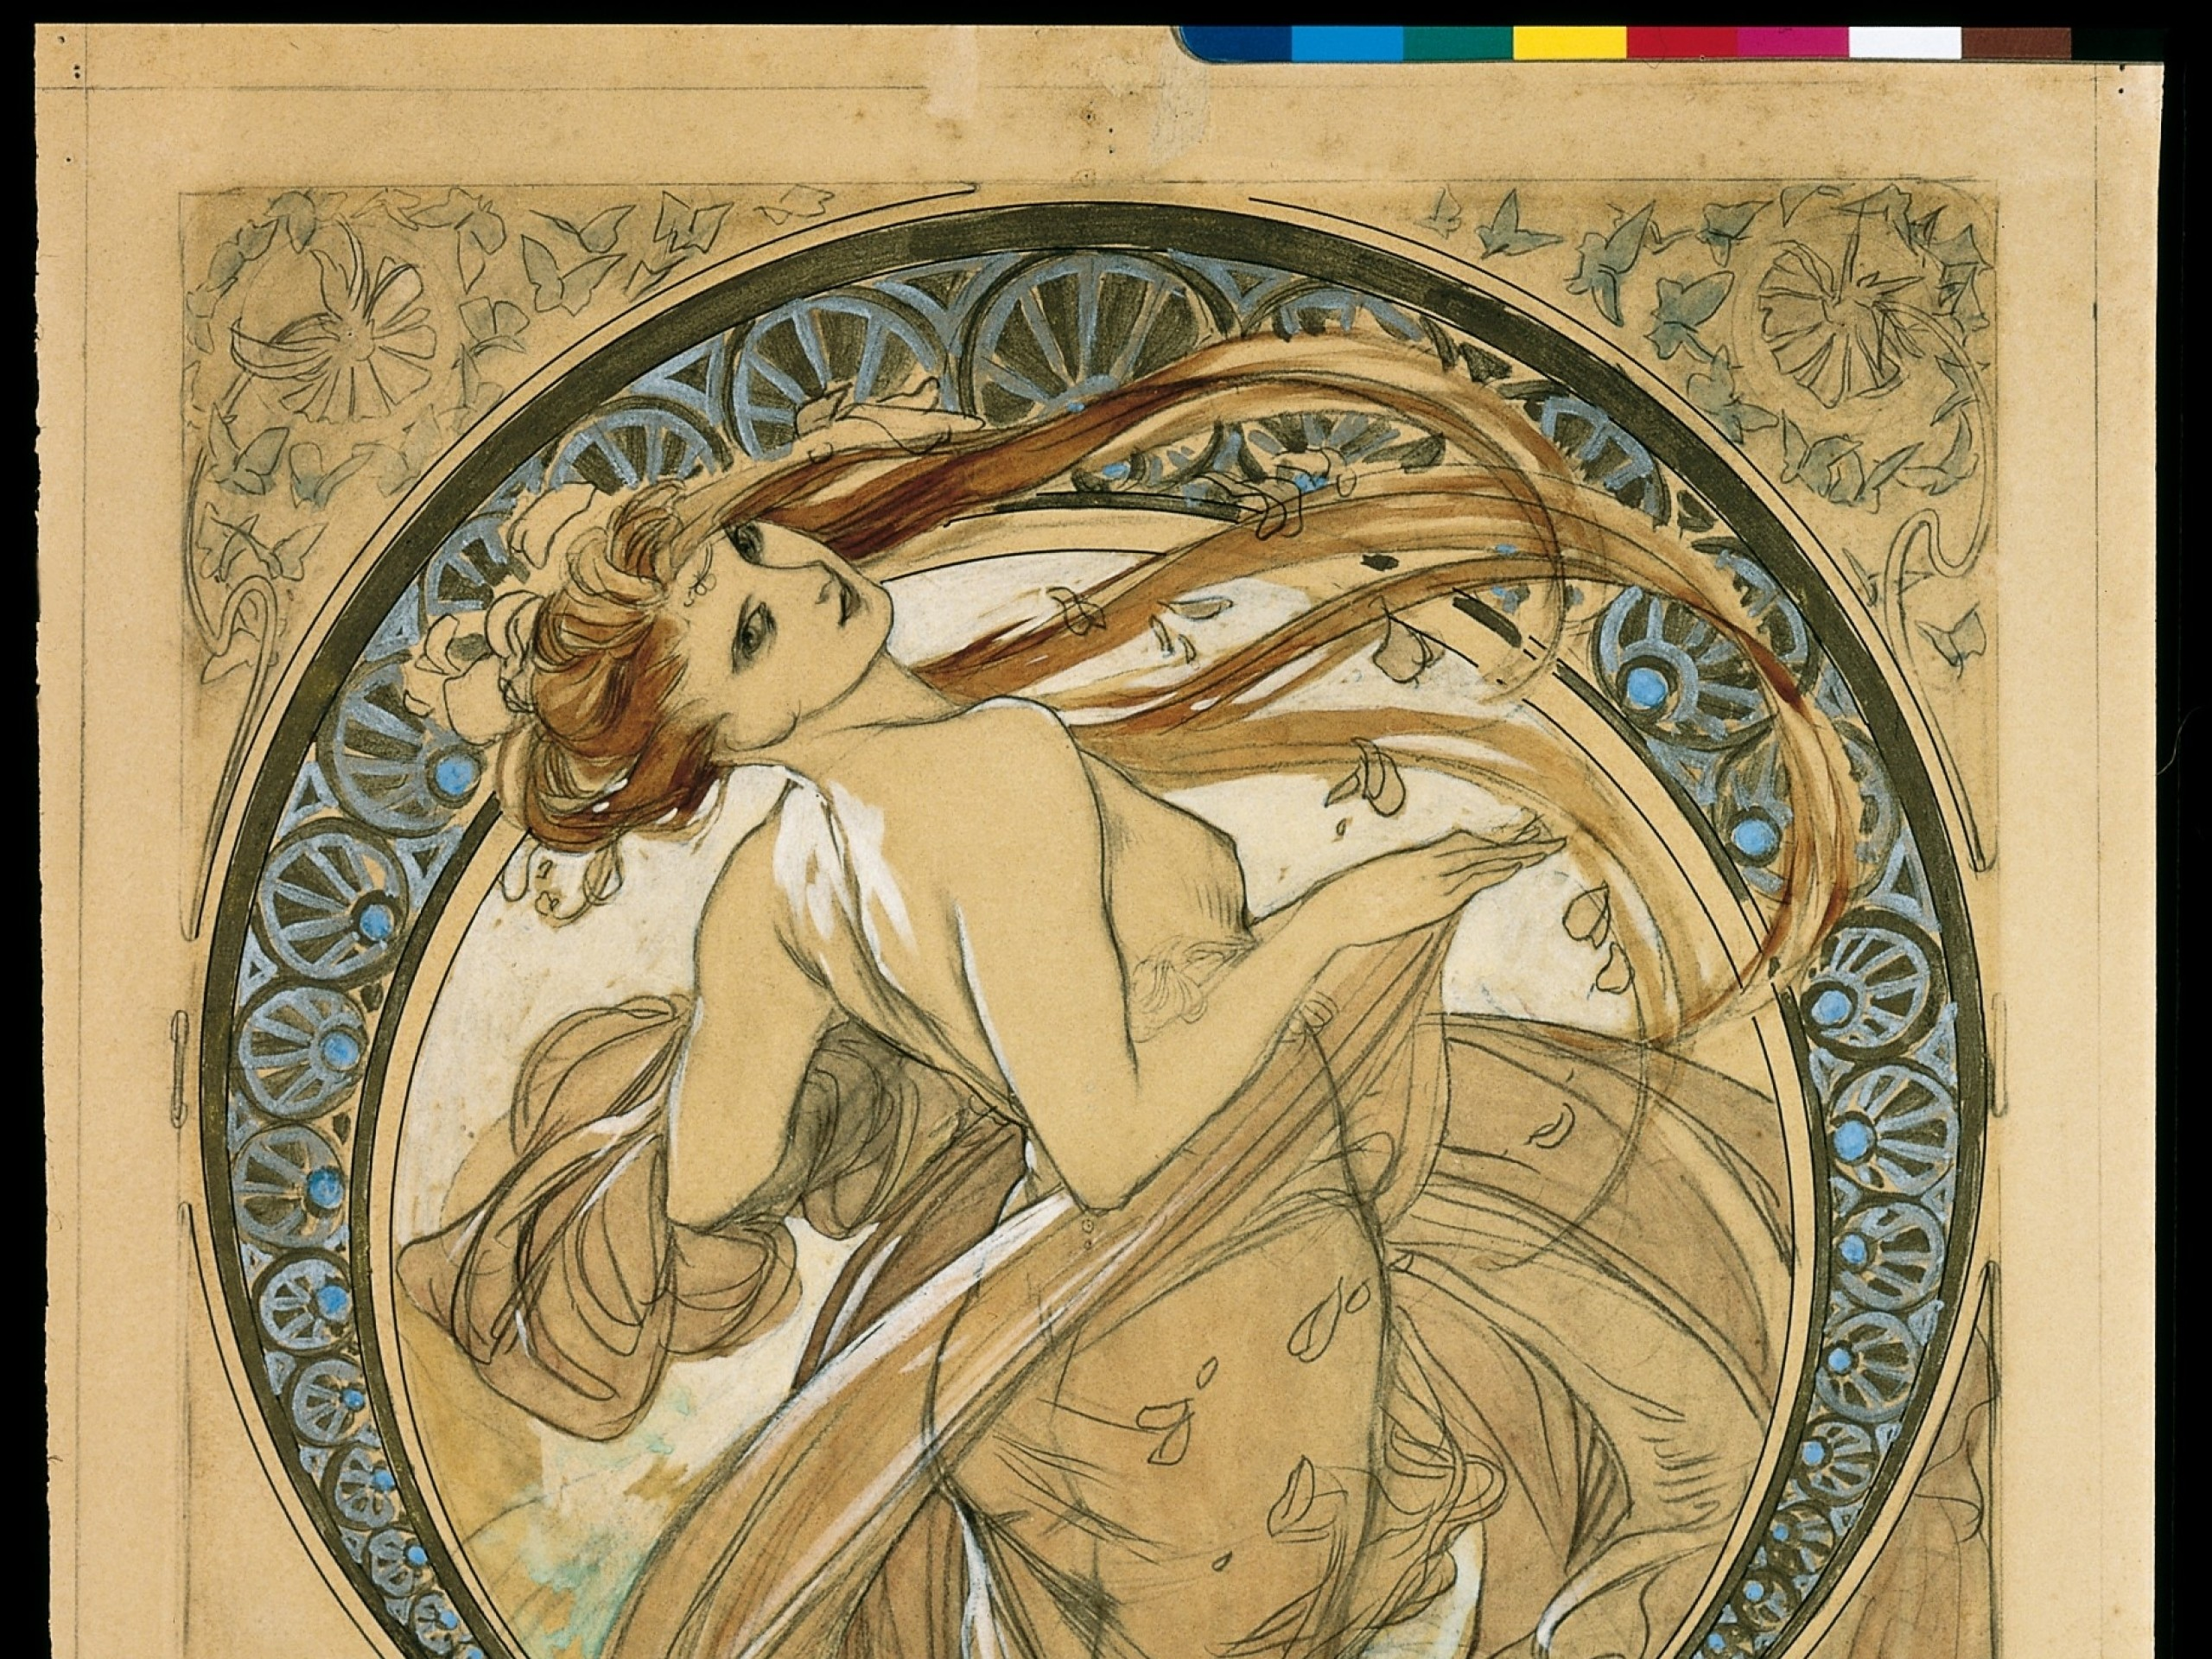 2560x1920 alphonse mucha 1824x2776 wallpaper Art HD Wallpaper